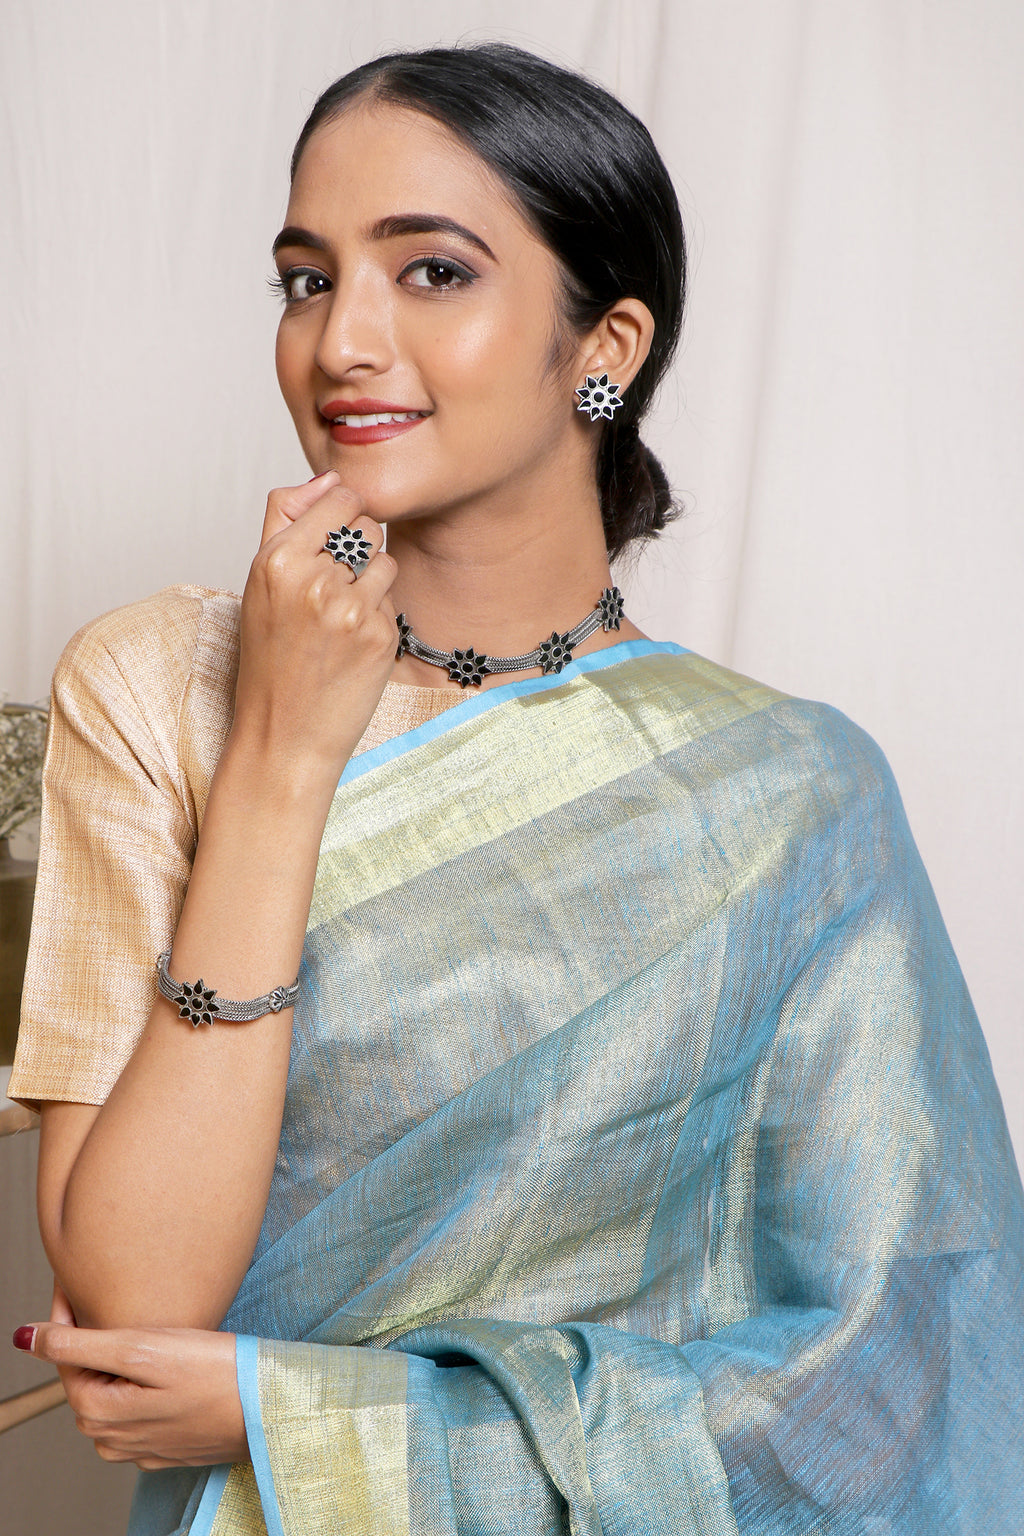 Teejh Bluebell Saree & Jewelry Gift Set